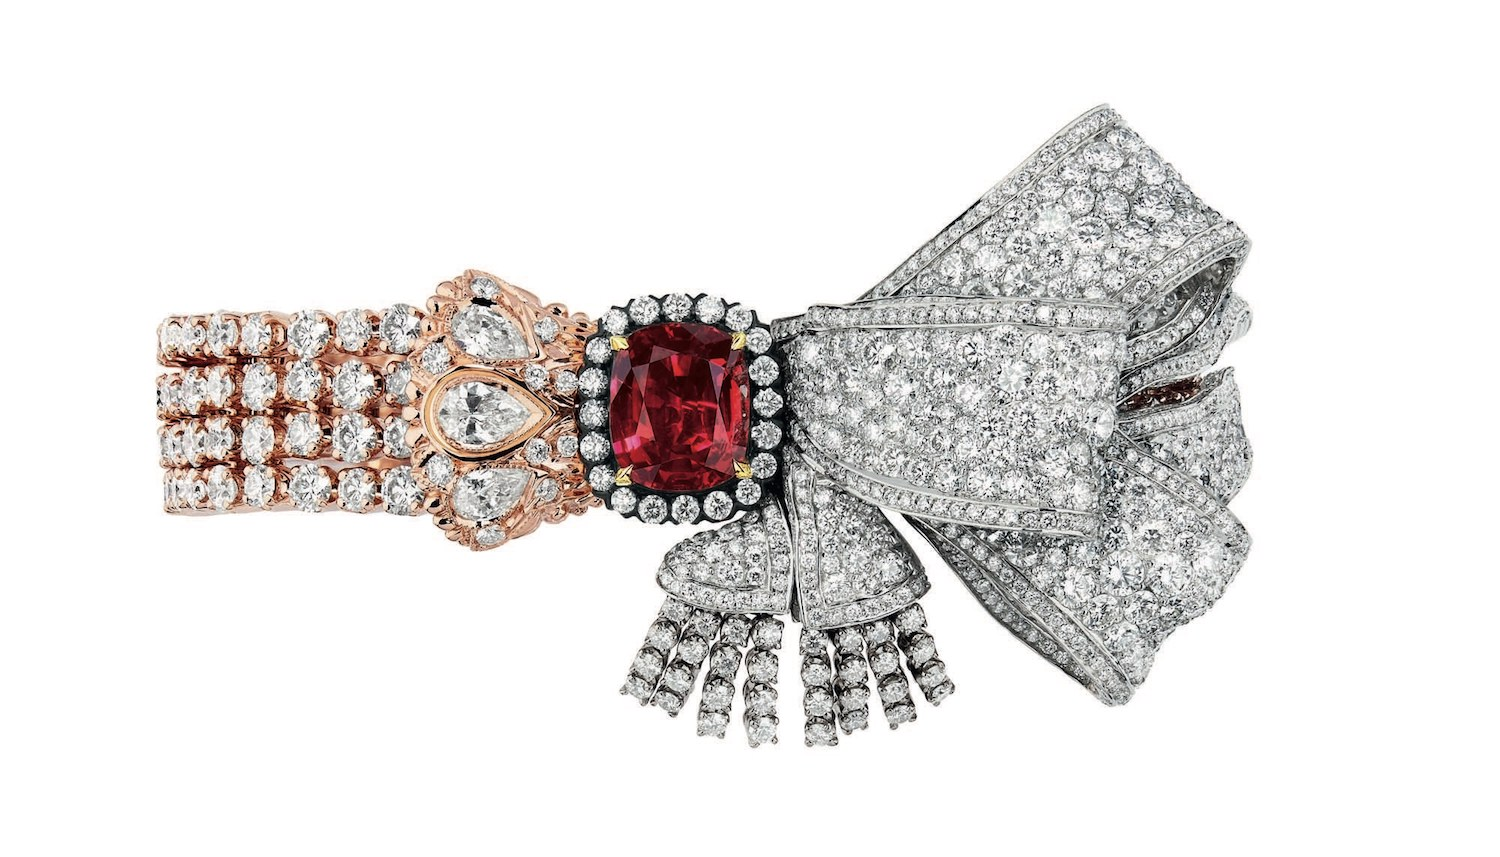 Salon de Mercure bracelet by Dior in rubies and diamonds.